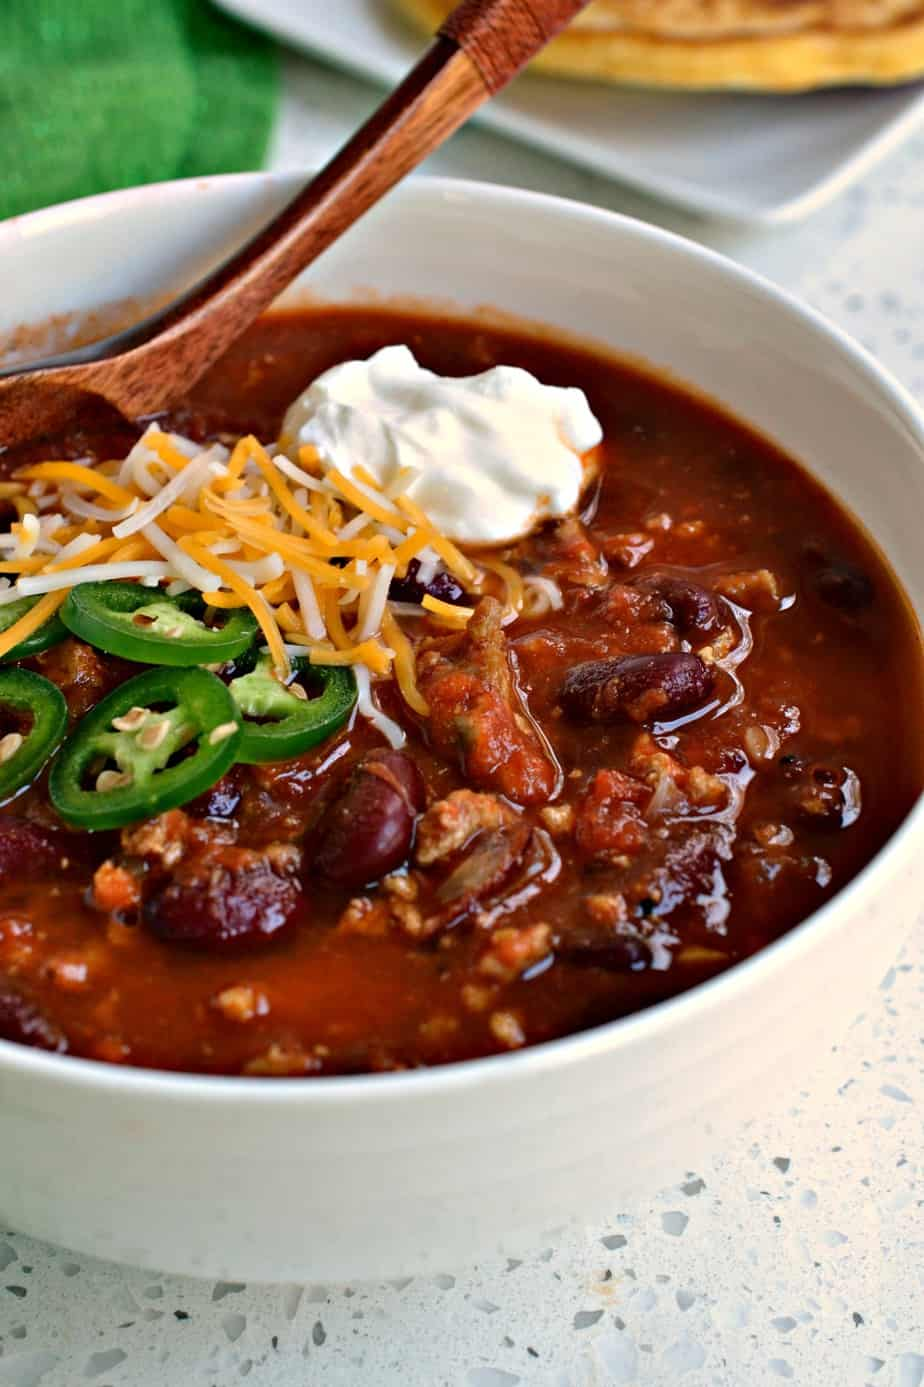 This Family Friendly Ground Turkey Chili is perfectly seasoned and slow simmered for a thick robust finish.